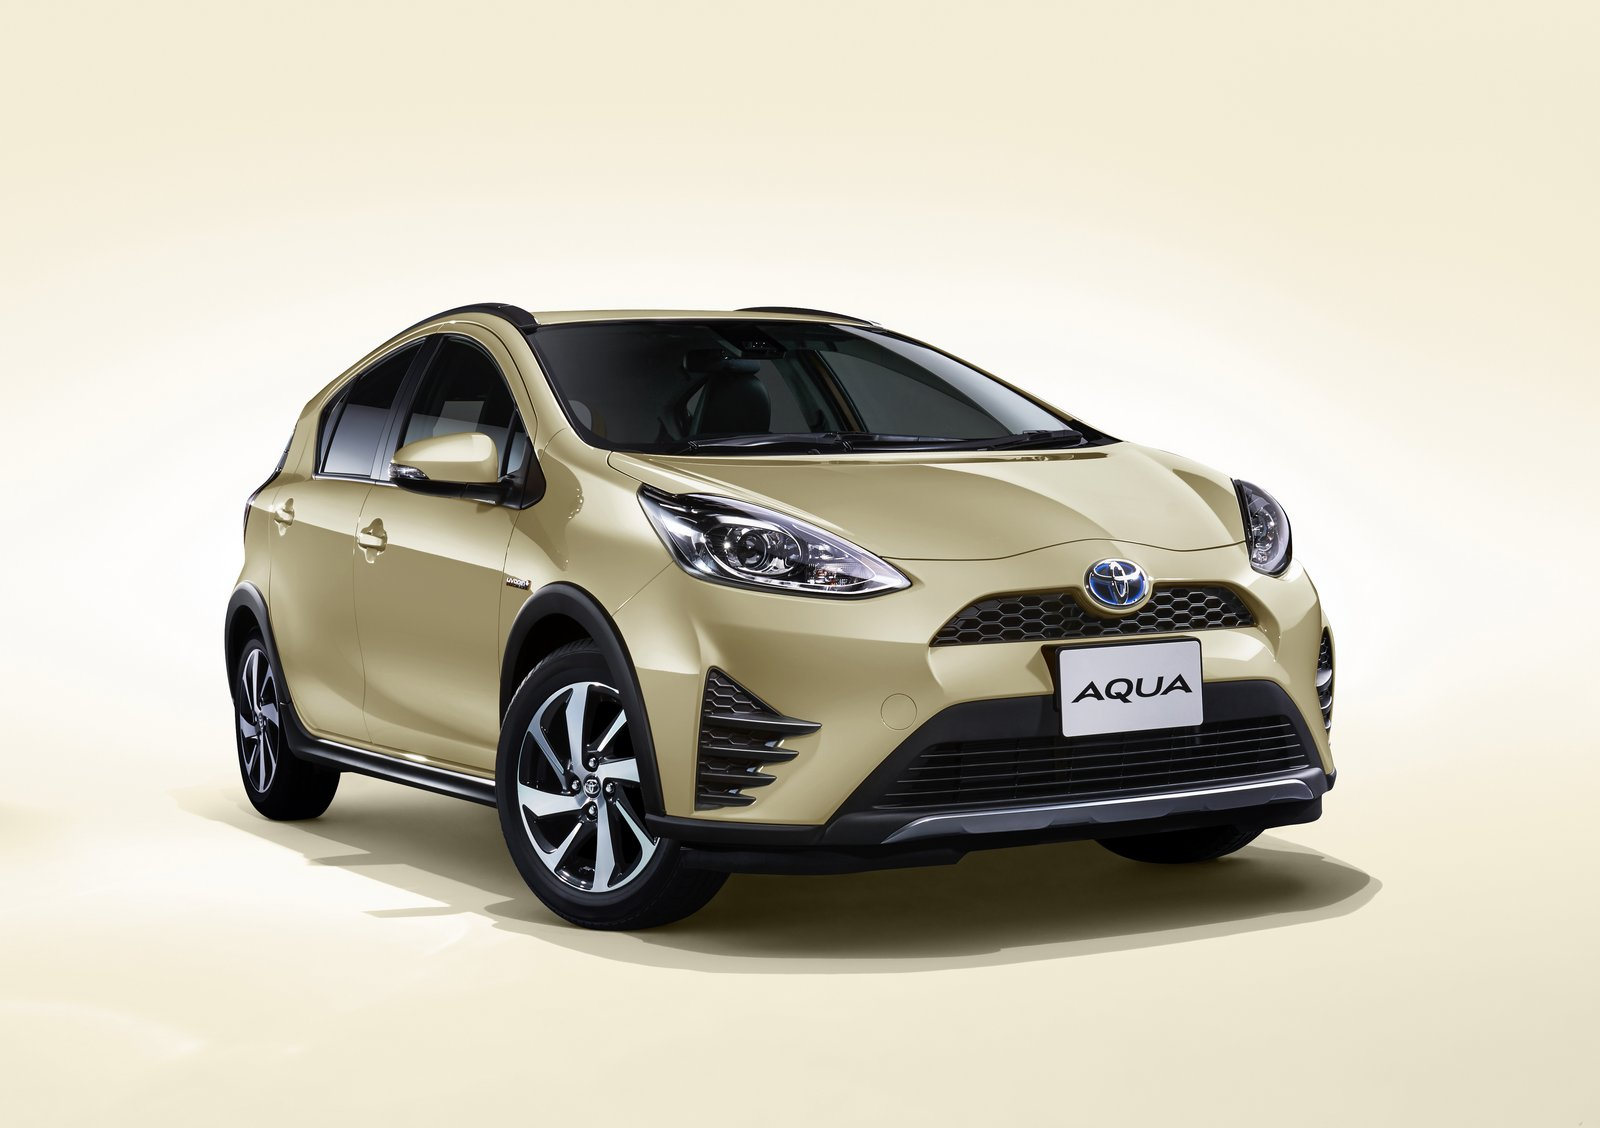 toyota aqua aka the prius c gets a facelift and a new crossover variant carscoops. Black Bedroom Furniture Sets. Home Design Ideas